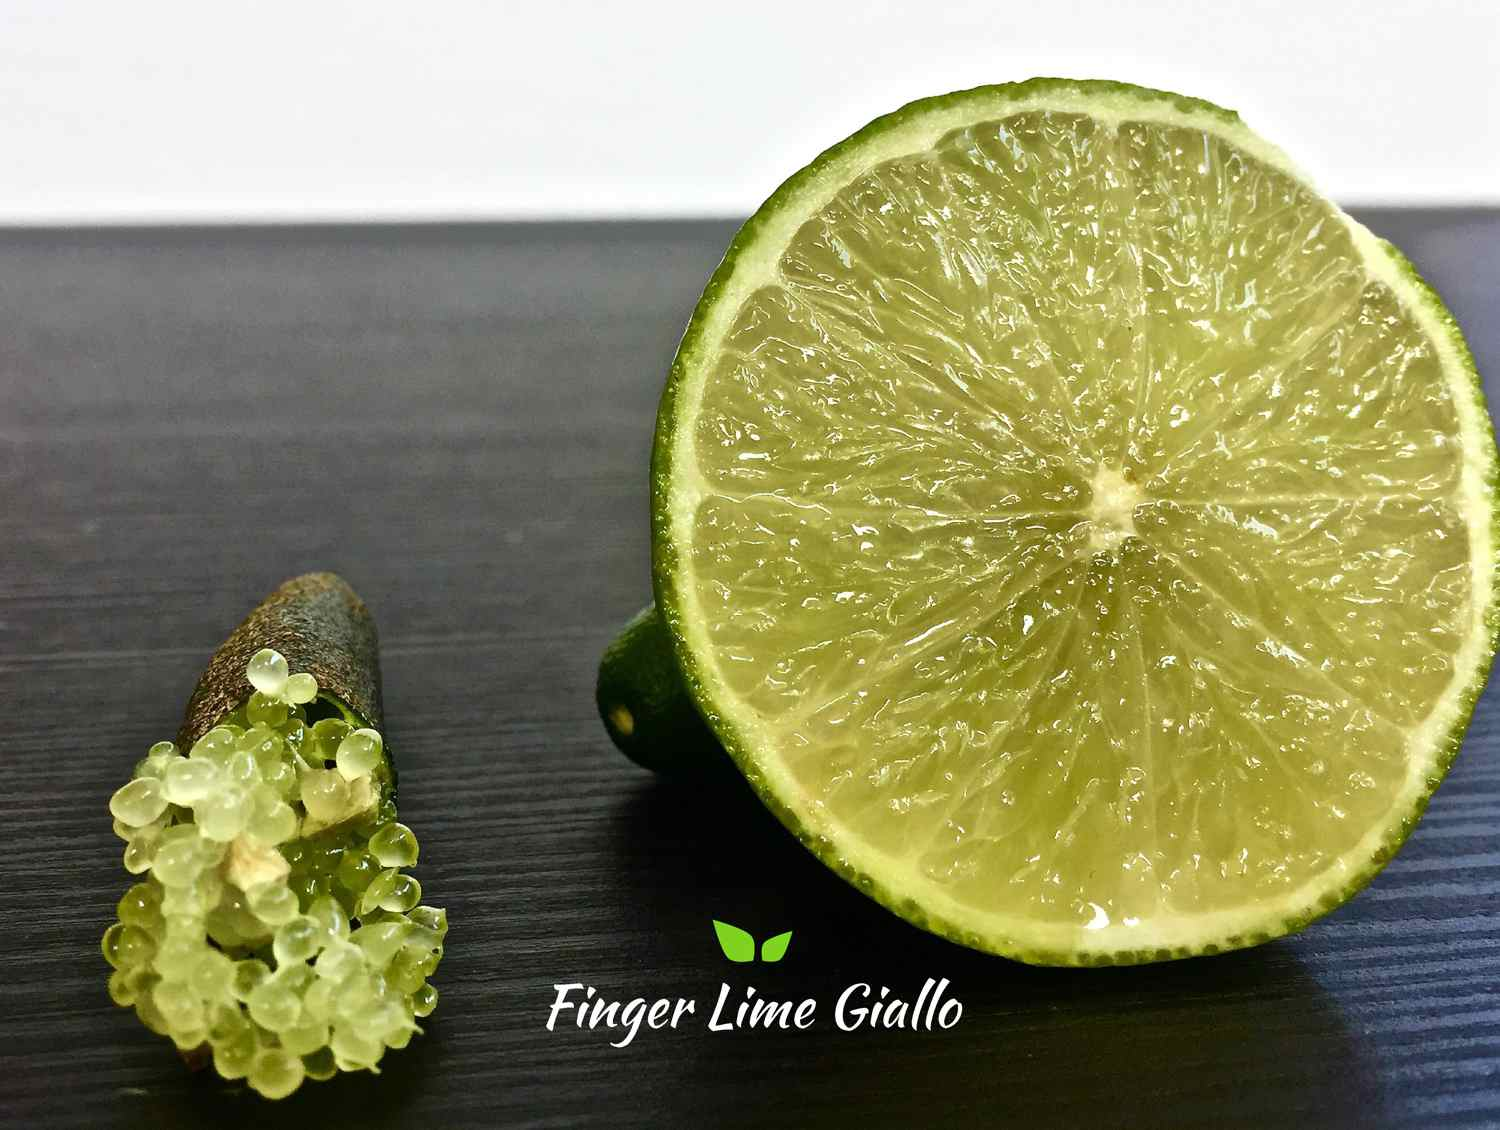 differenze tra finger lime giallo e lime